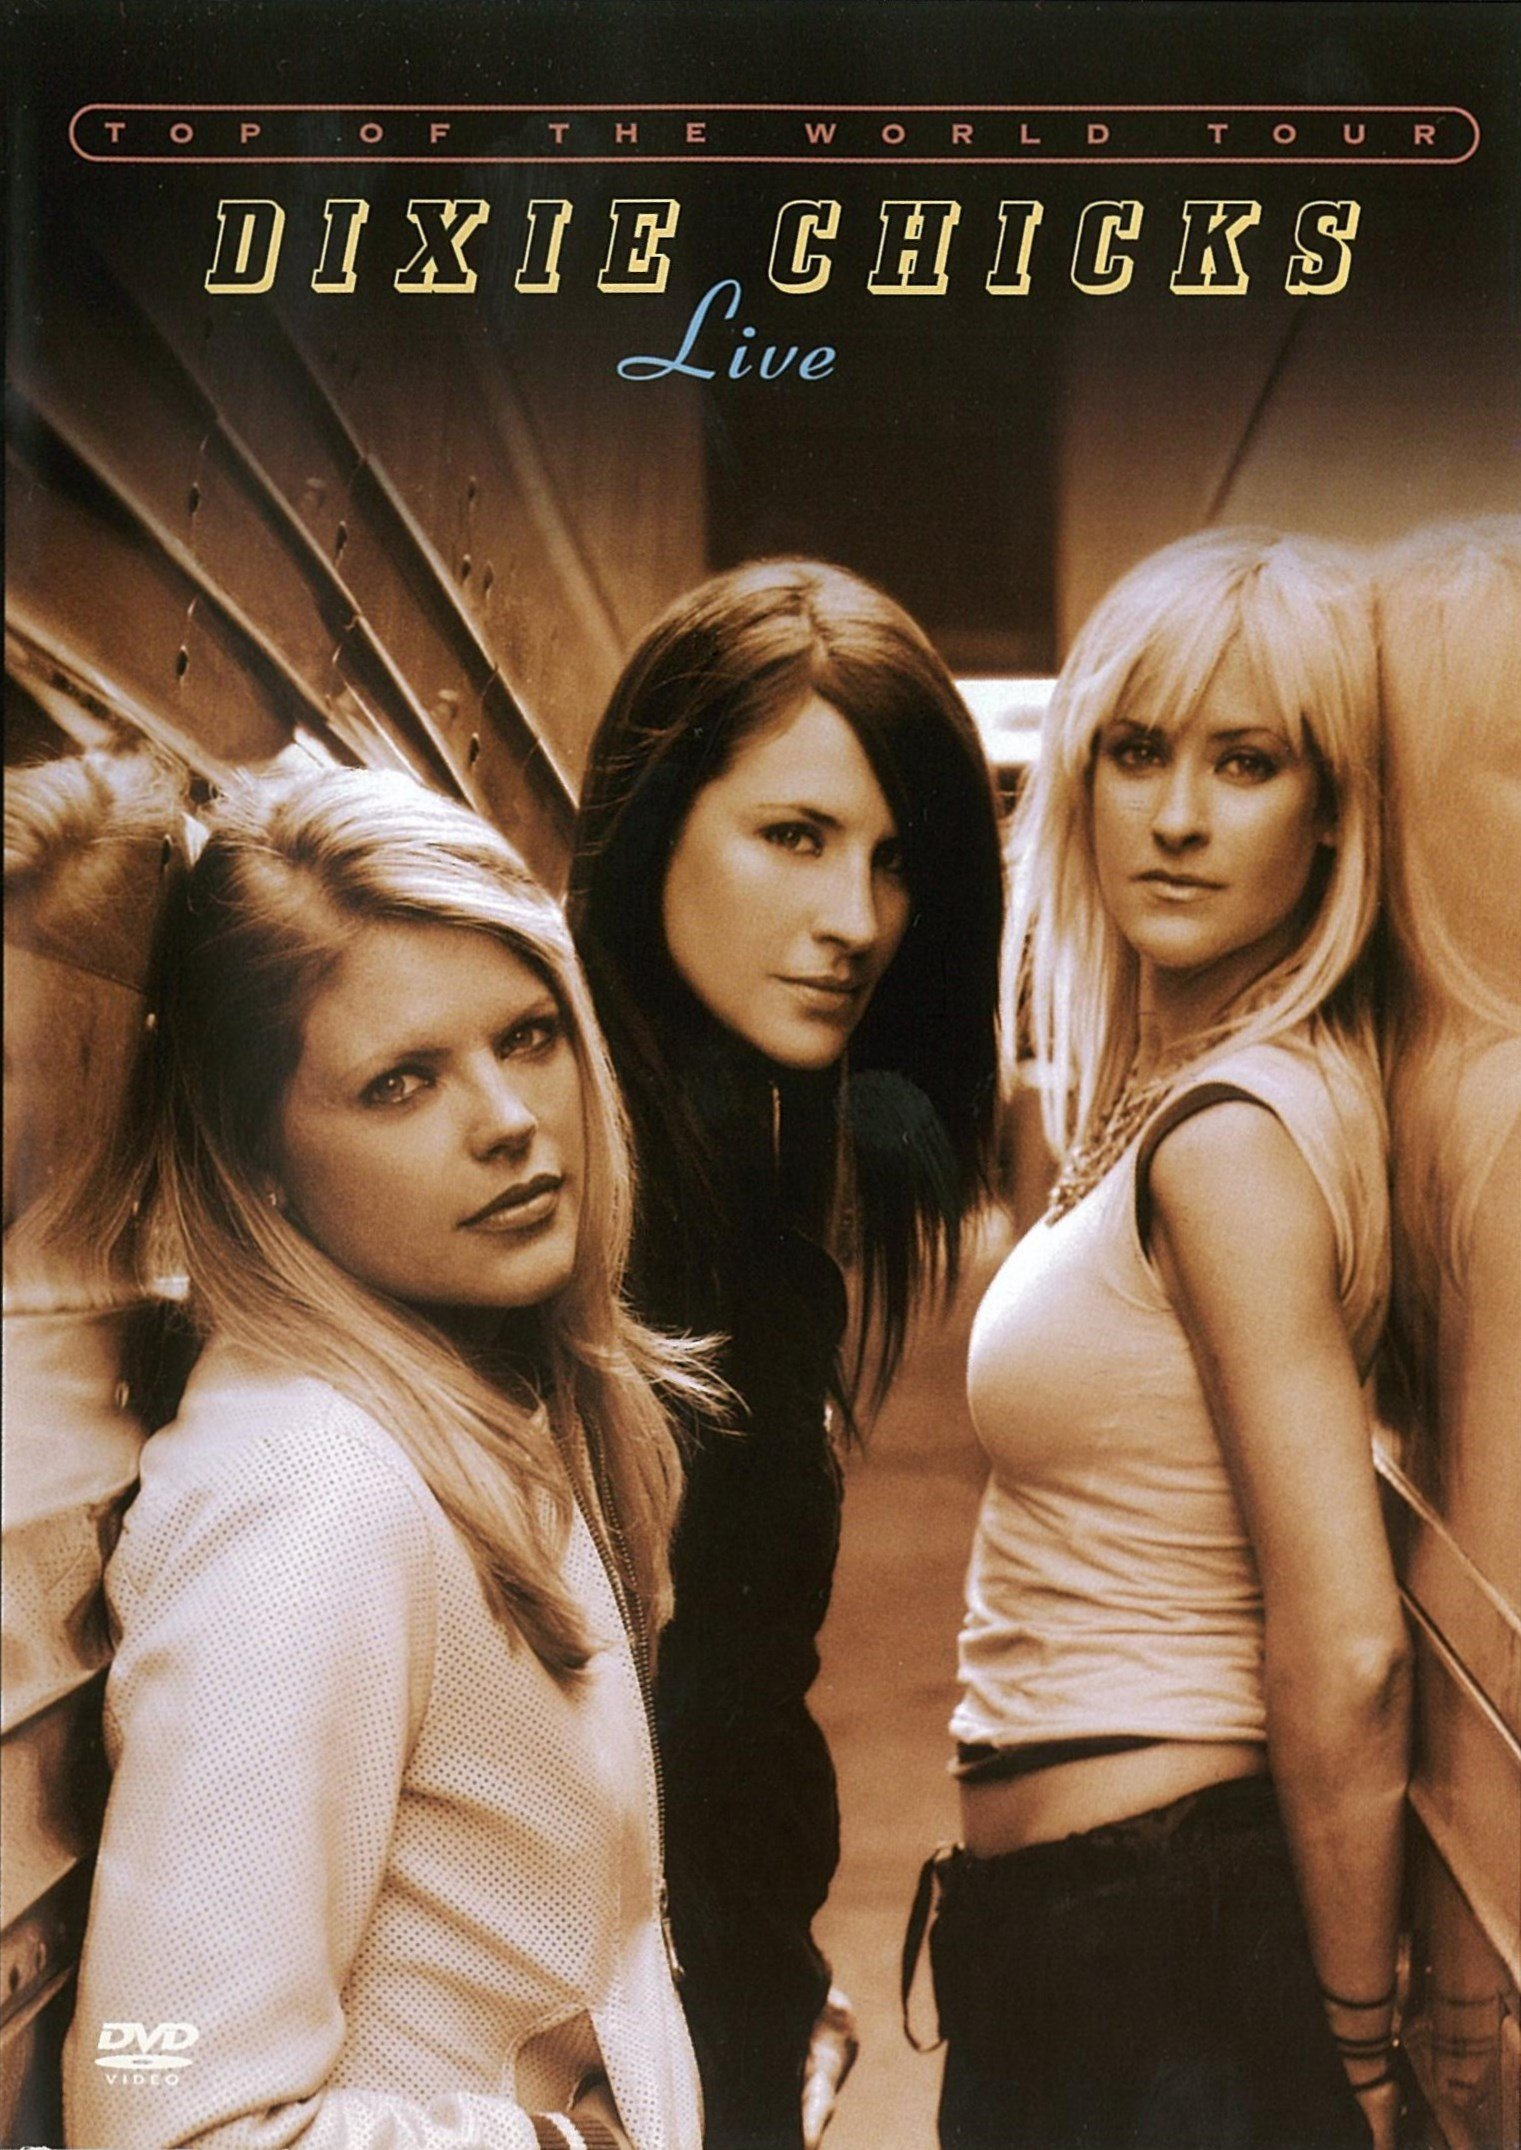 Dixie chicks video games